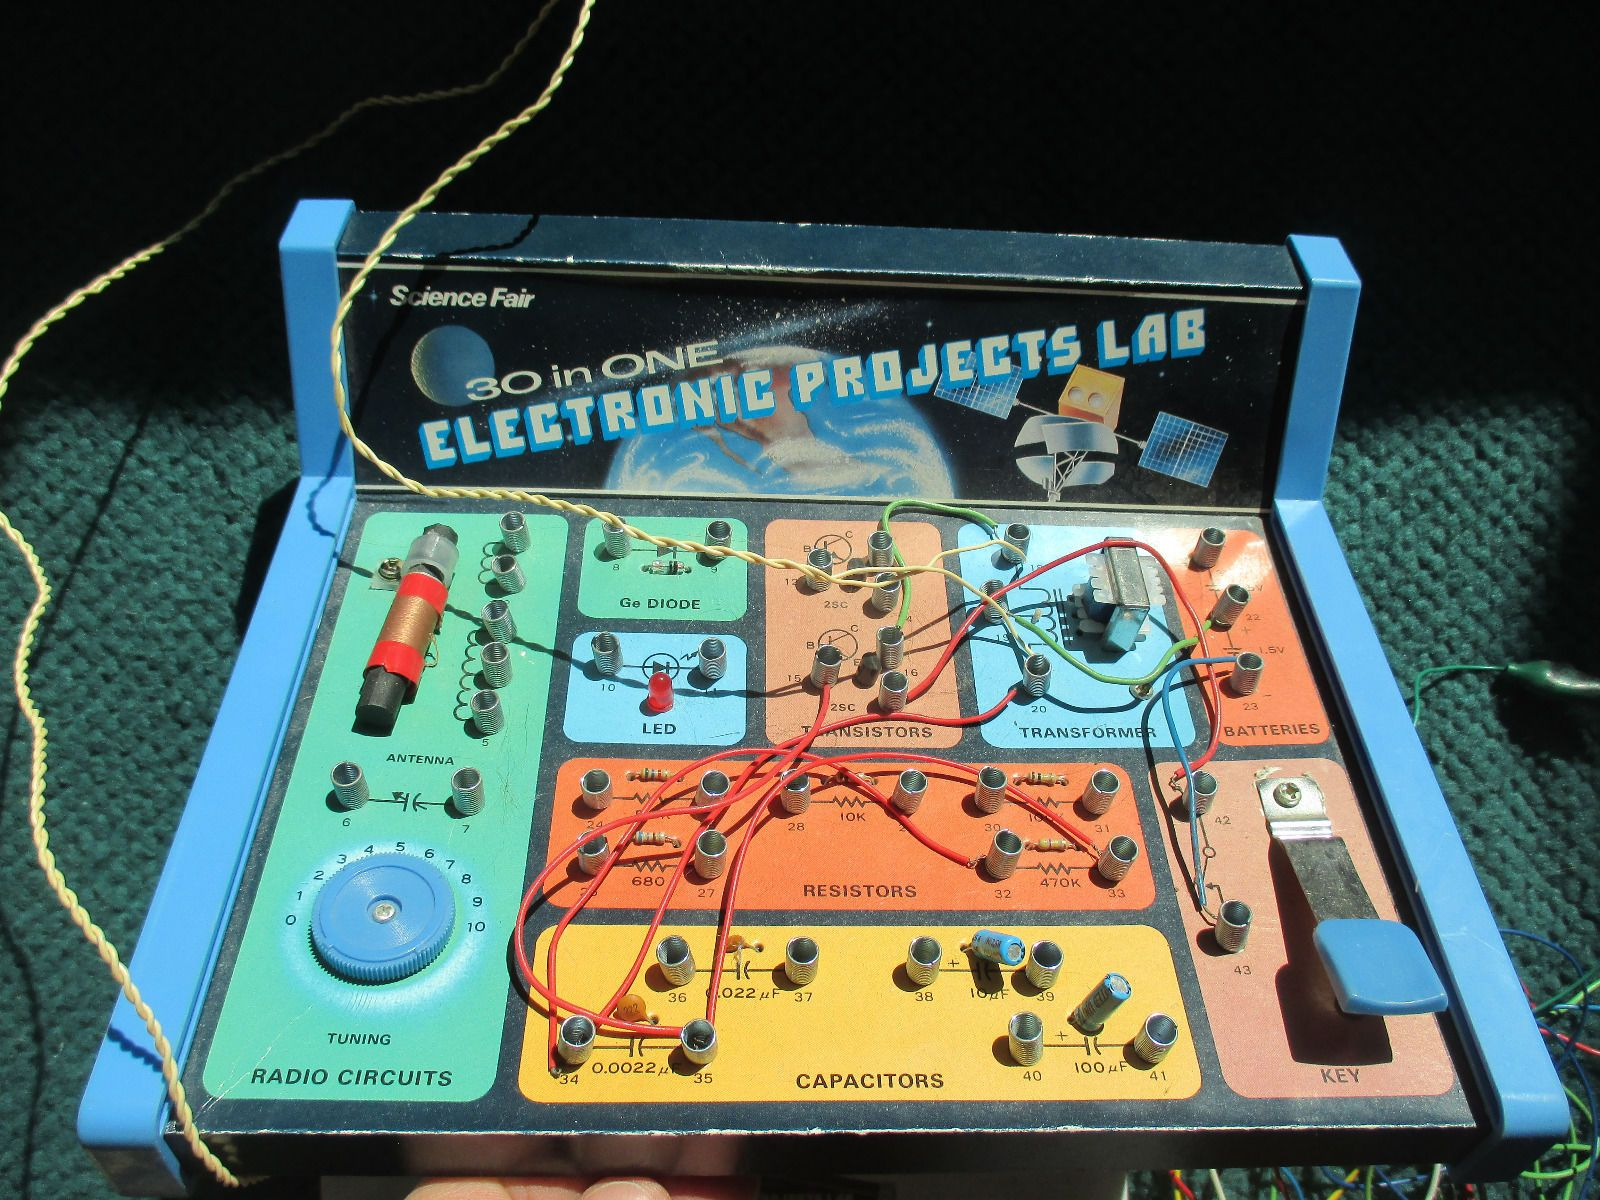 30 In 1 Electronic Projects Lab1982 Radio Shack Science Fair Has Snap Circuits Kit Education Set Game Toy Hobby New Ebay Instructions